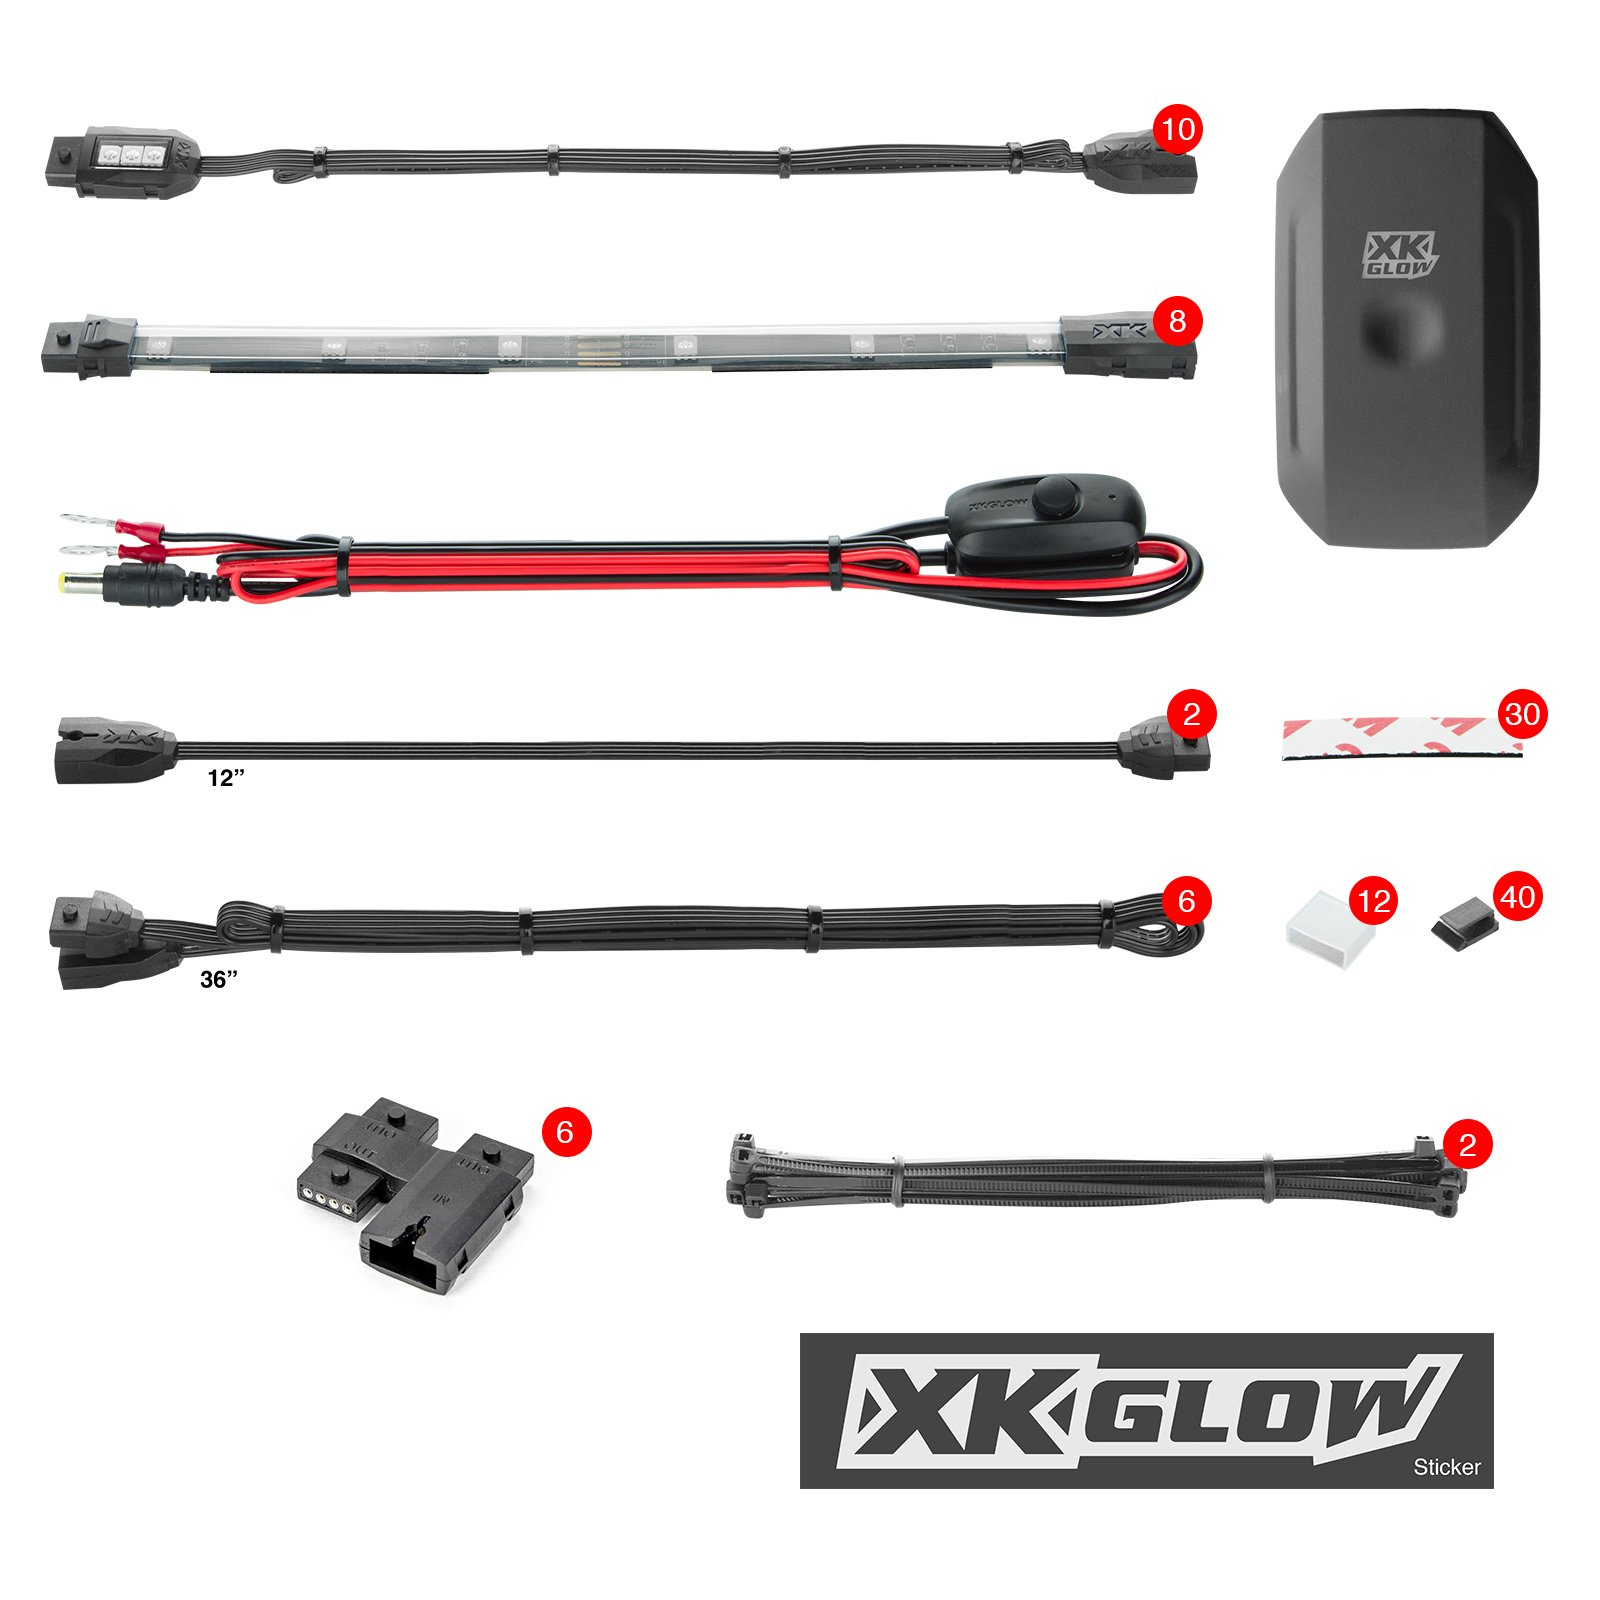 XK-GLOW KS-MOTO-ADVANCE 10 Pod 8 Strip 2nd gen XKchrome App Control Motorcycle Advanced LED Accent Light Kit